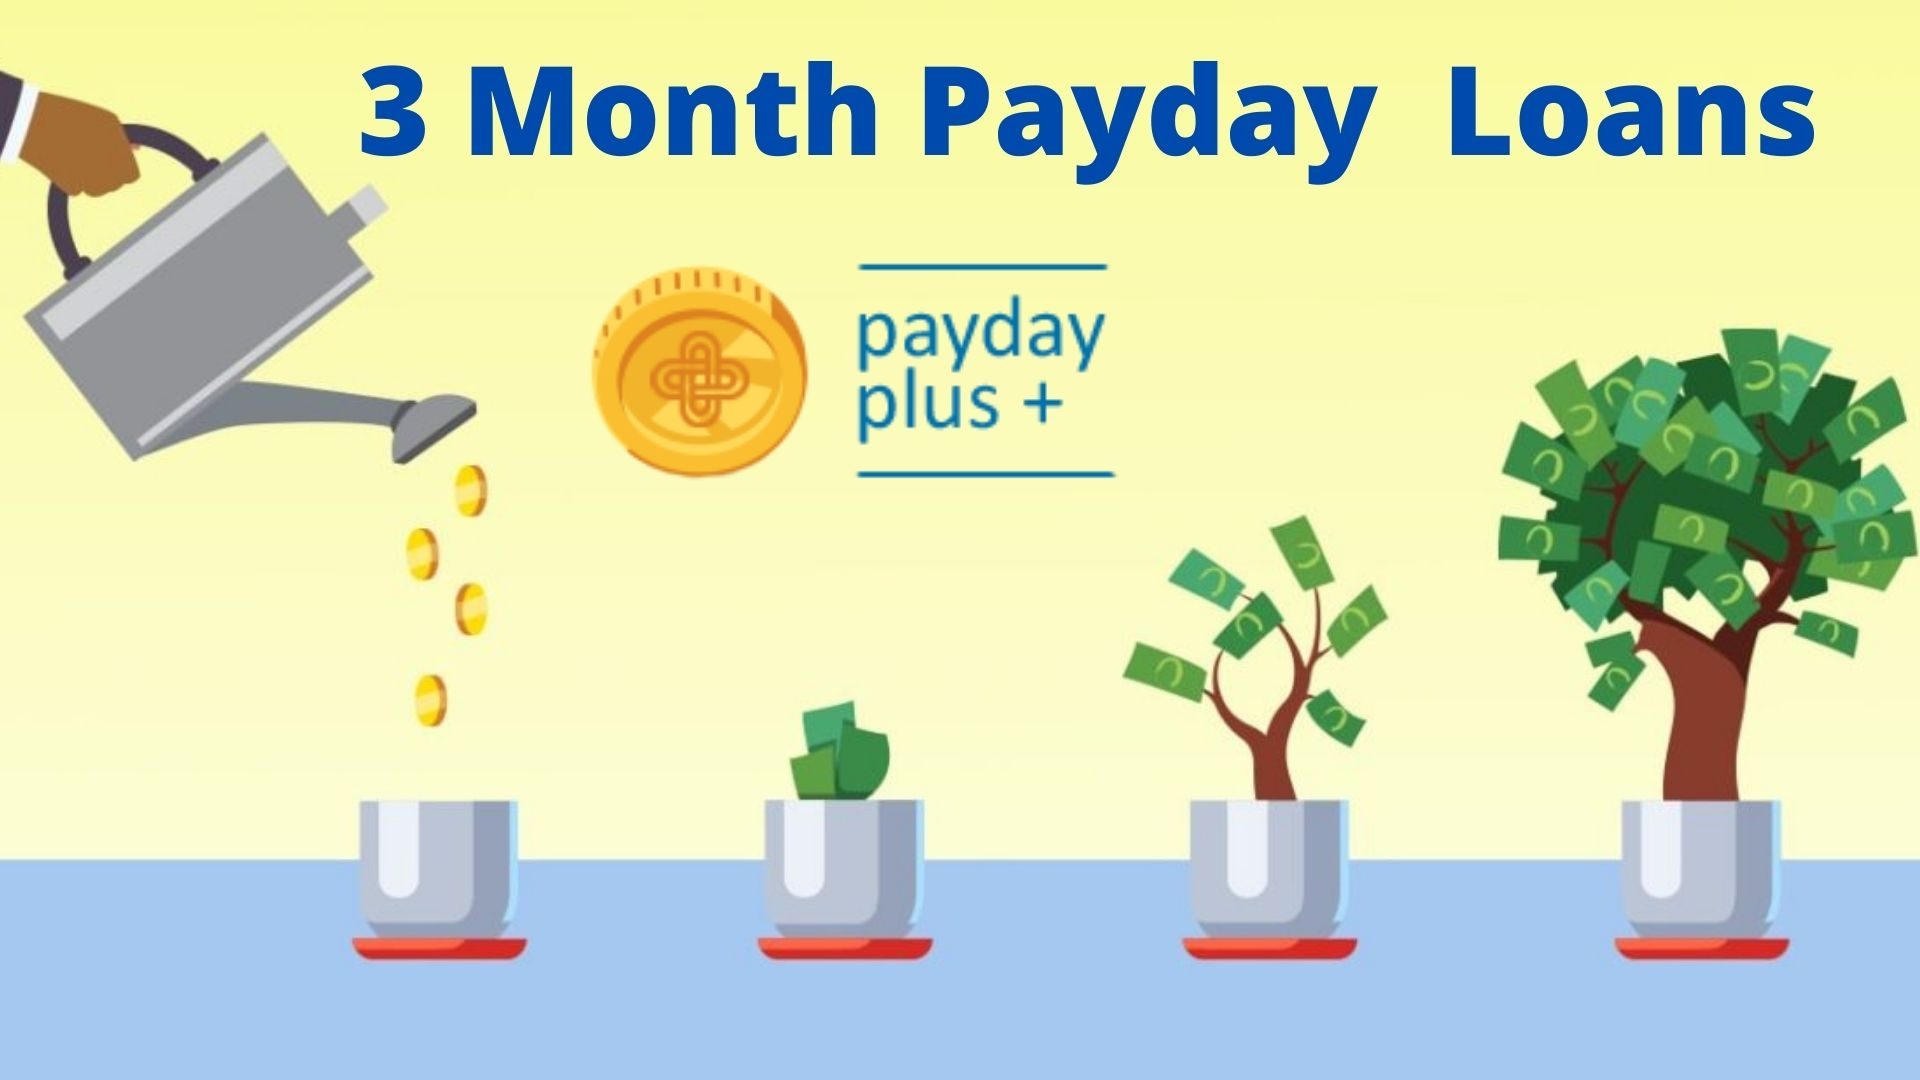 3 Month Payday Loan